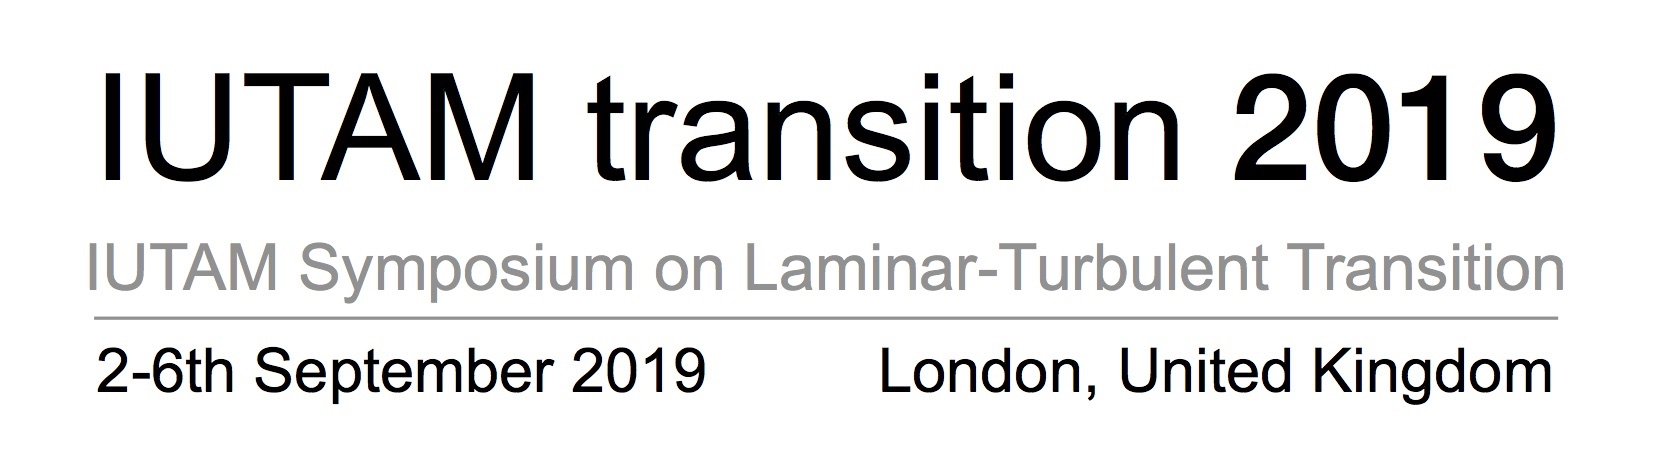 IUTAM Transition 2019 logo